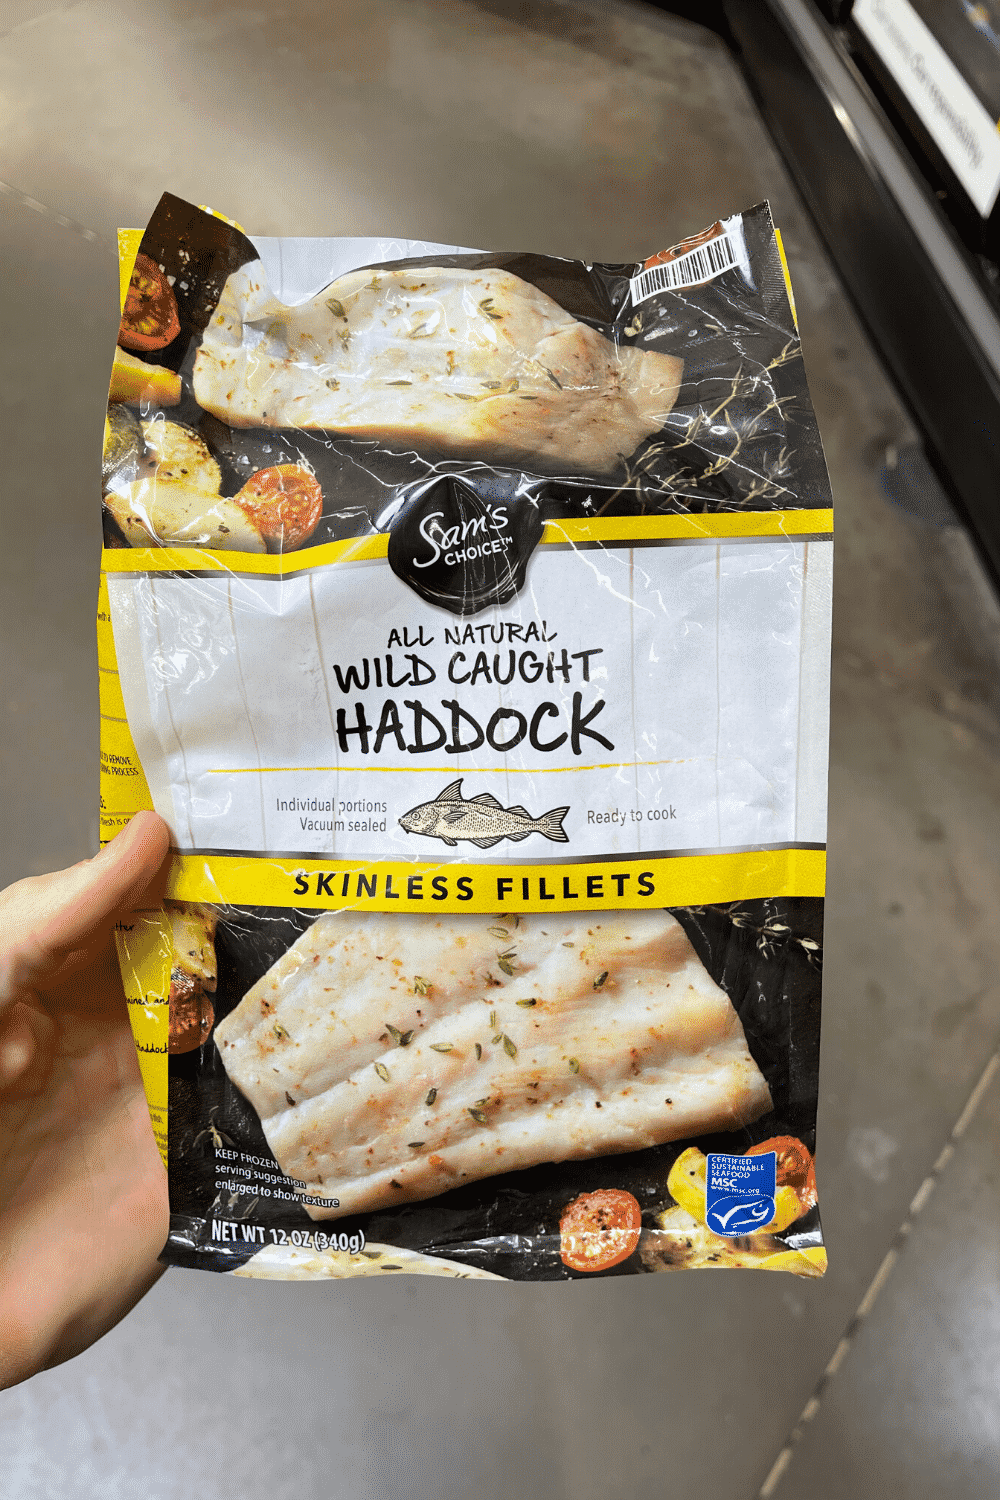 A hand holding a bag of frozen haddock.